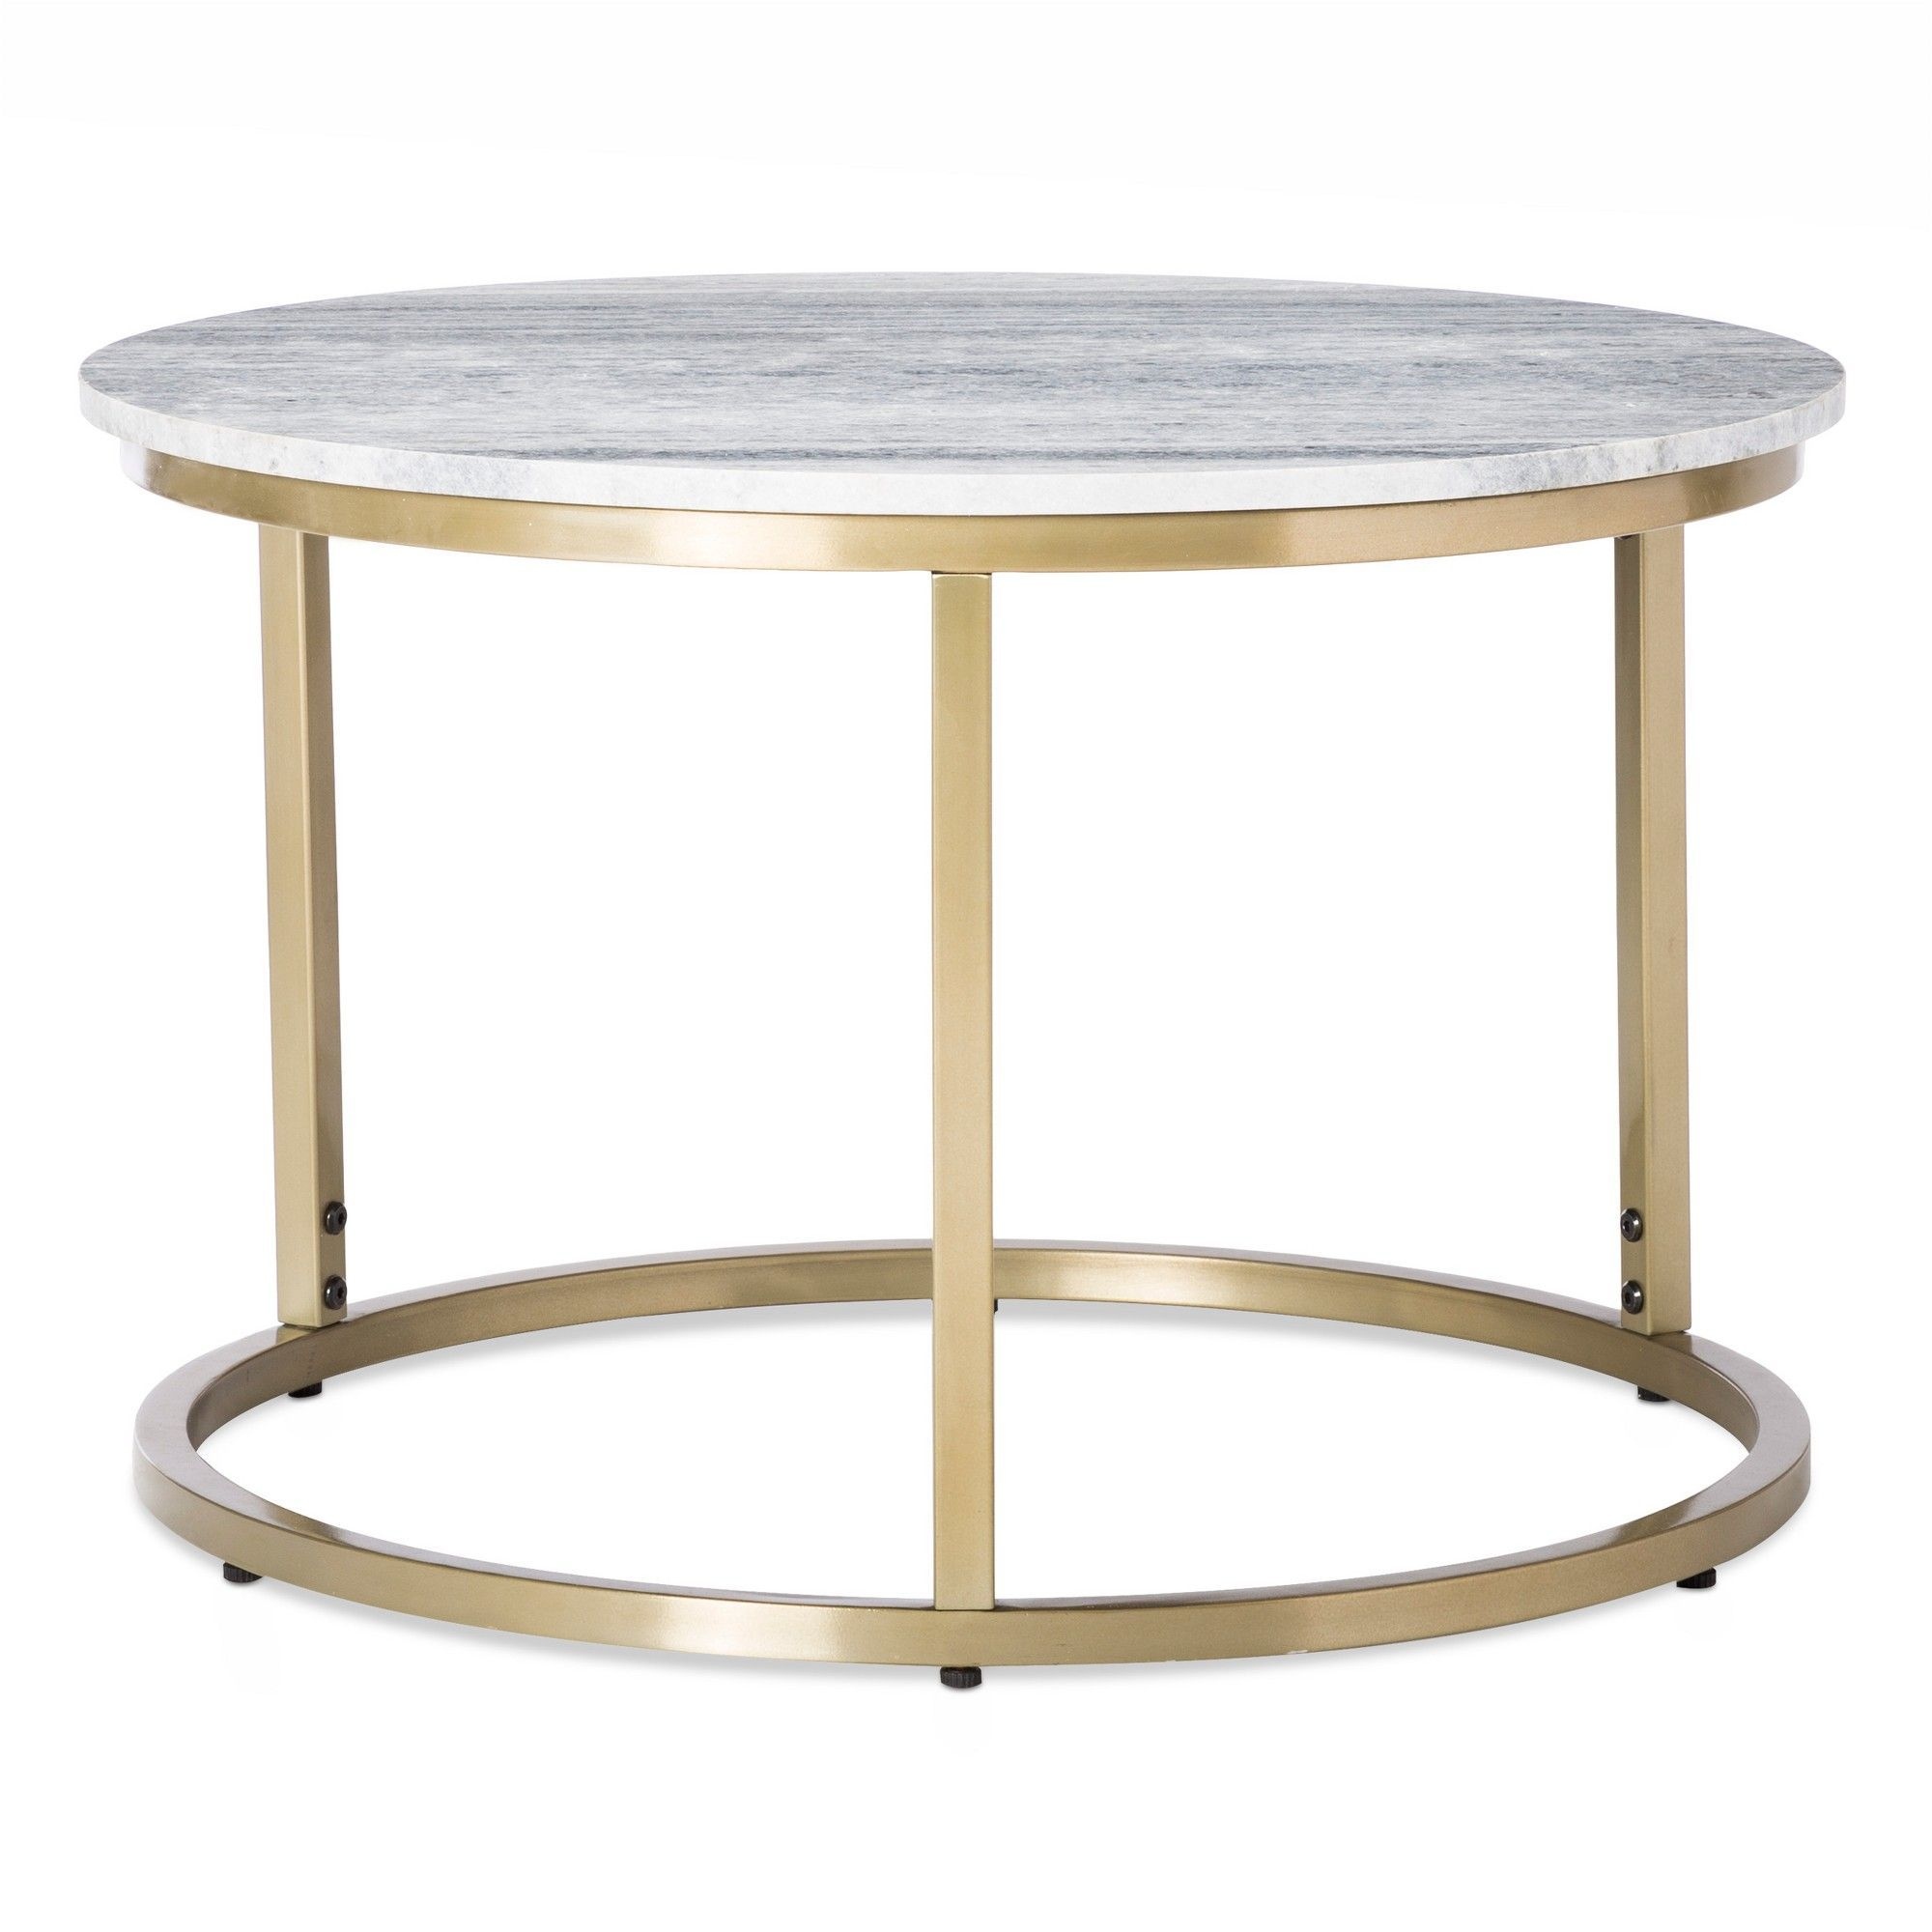 small marble top coffee table gold threshold products target accent old barn door matching bedside tables blue desk lamp corner bunnings outdoor lounge chair and metal diy round